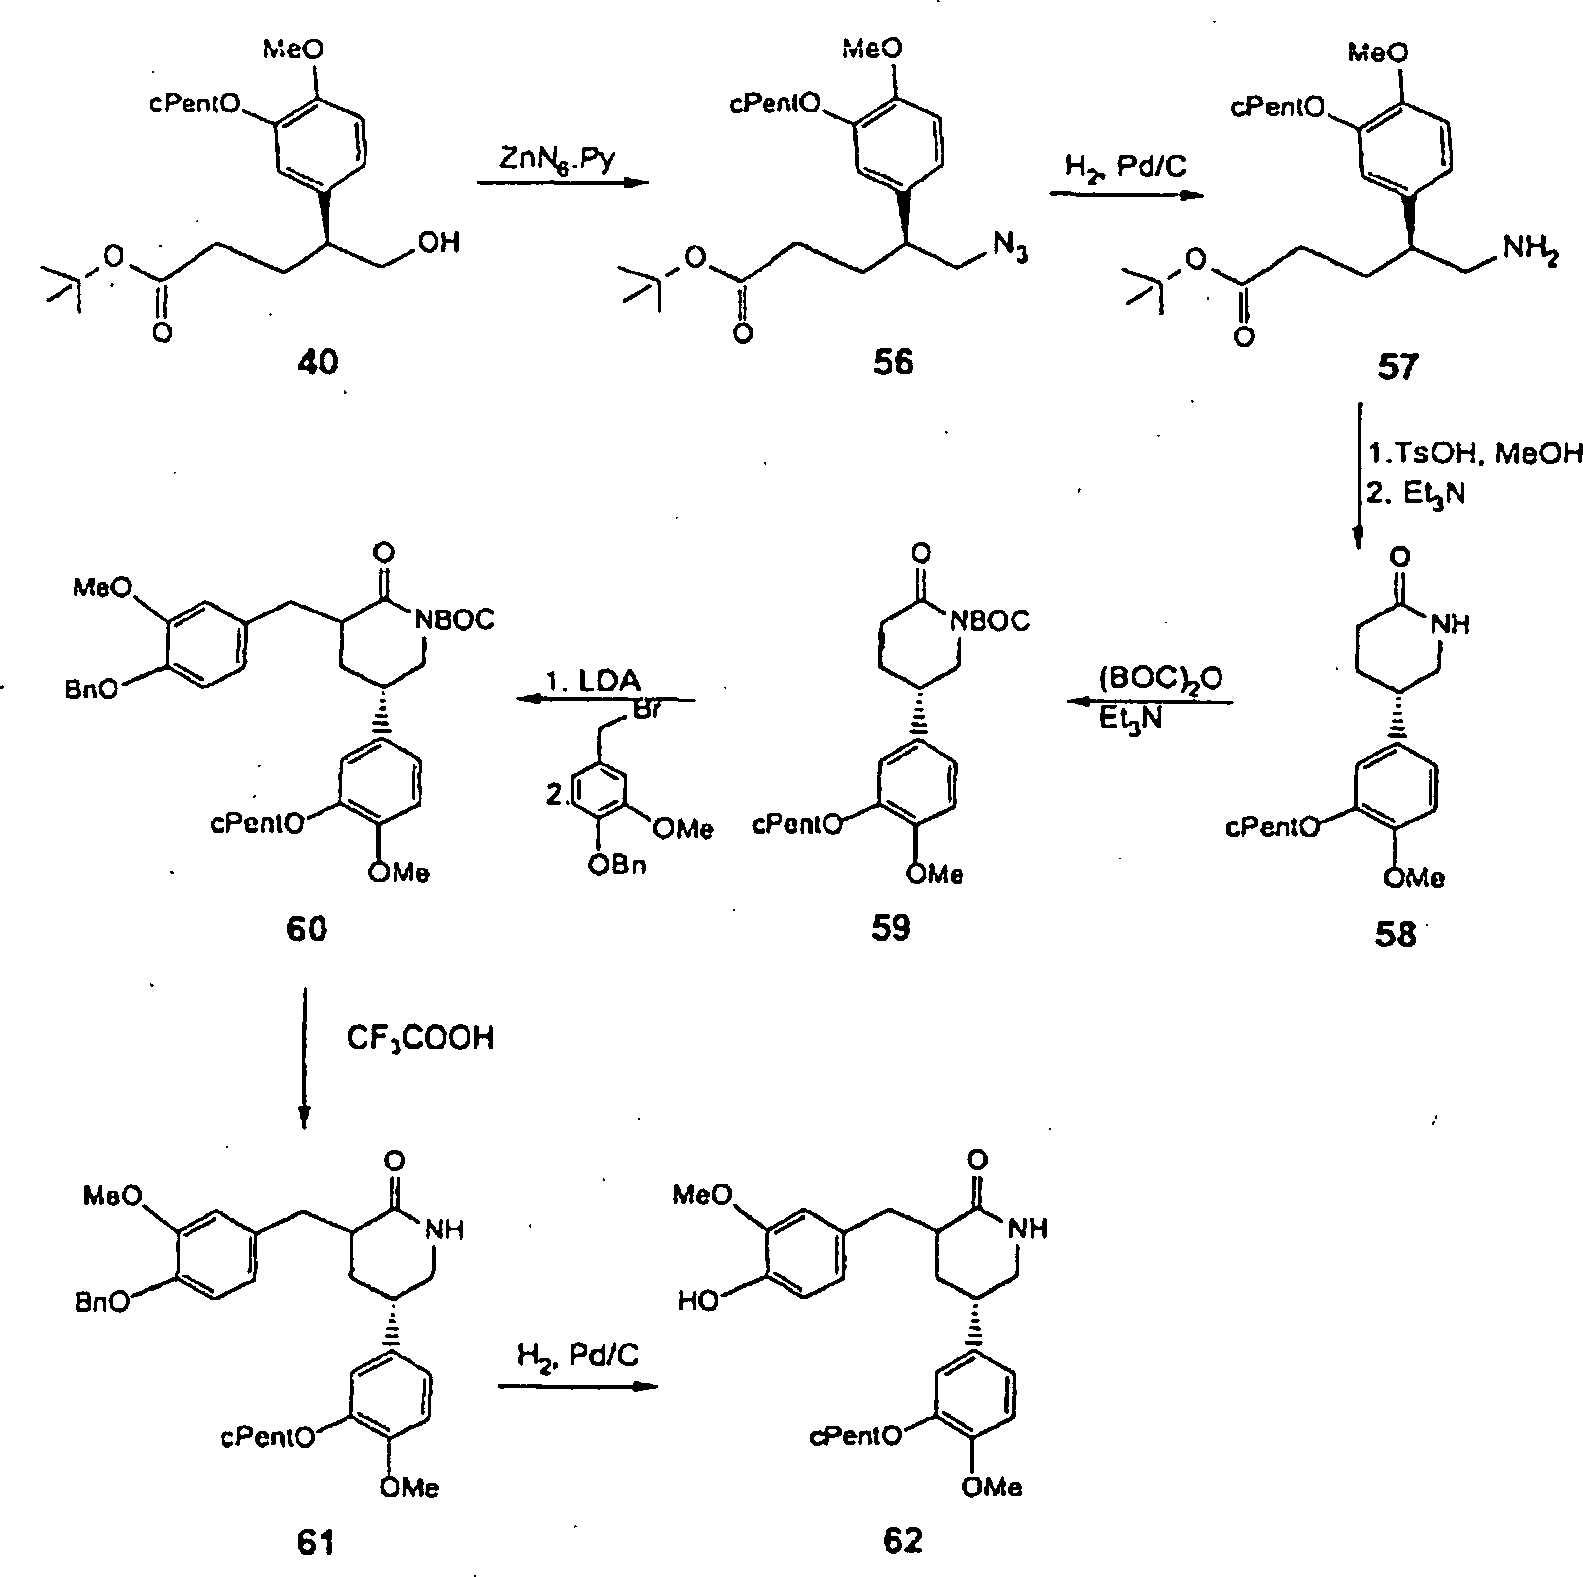 DE69919179T2 Substituted phenyl gamma delta lactone and